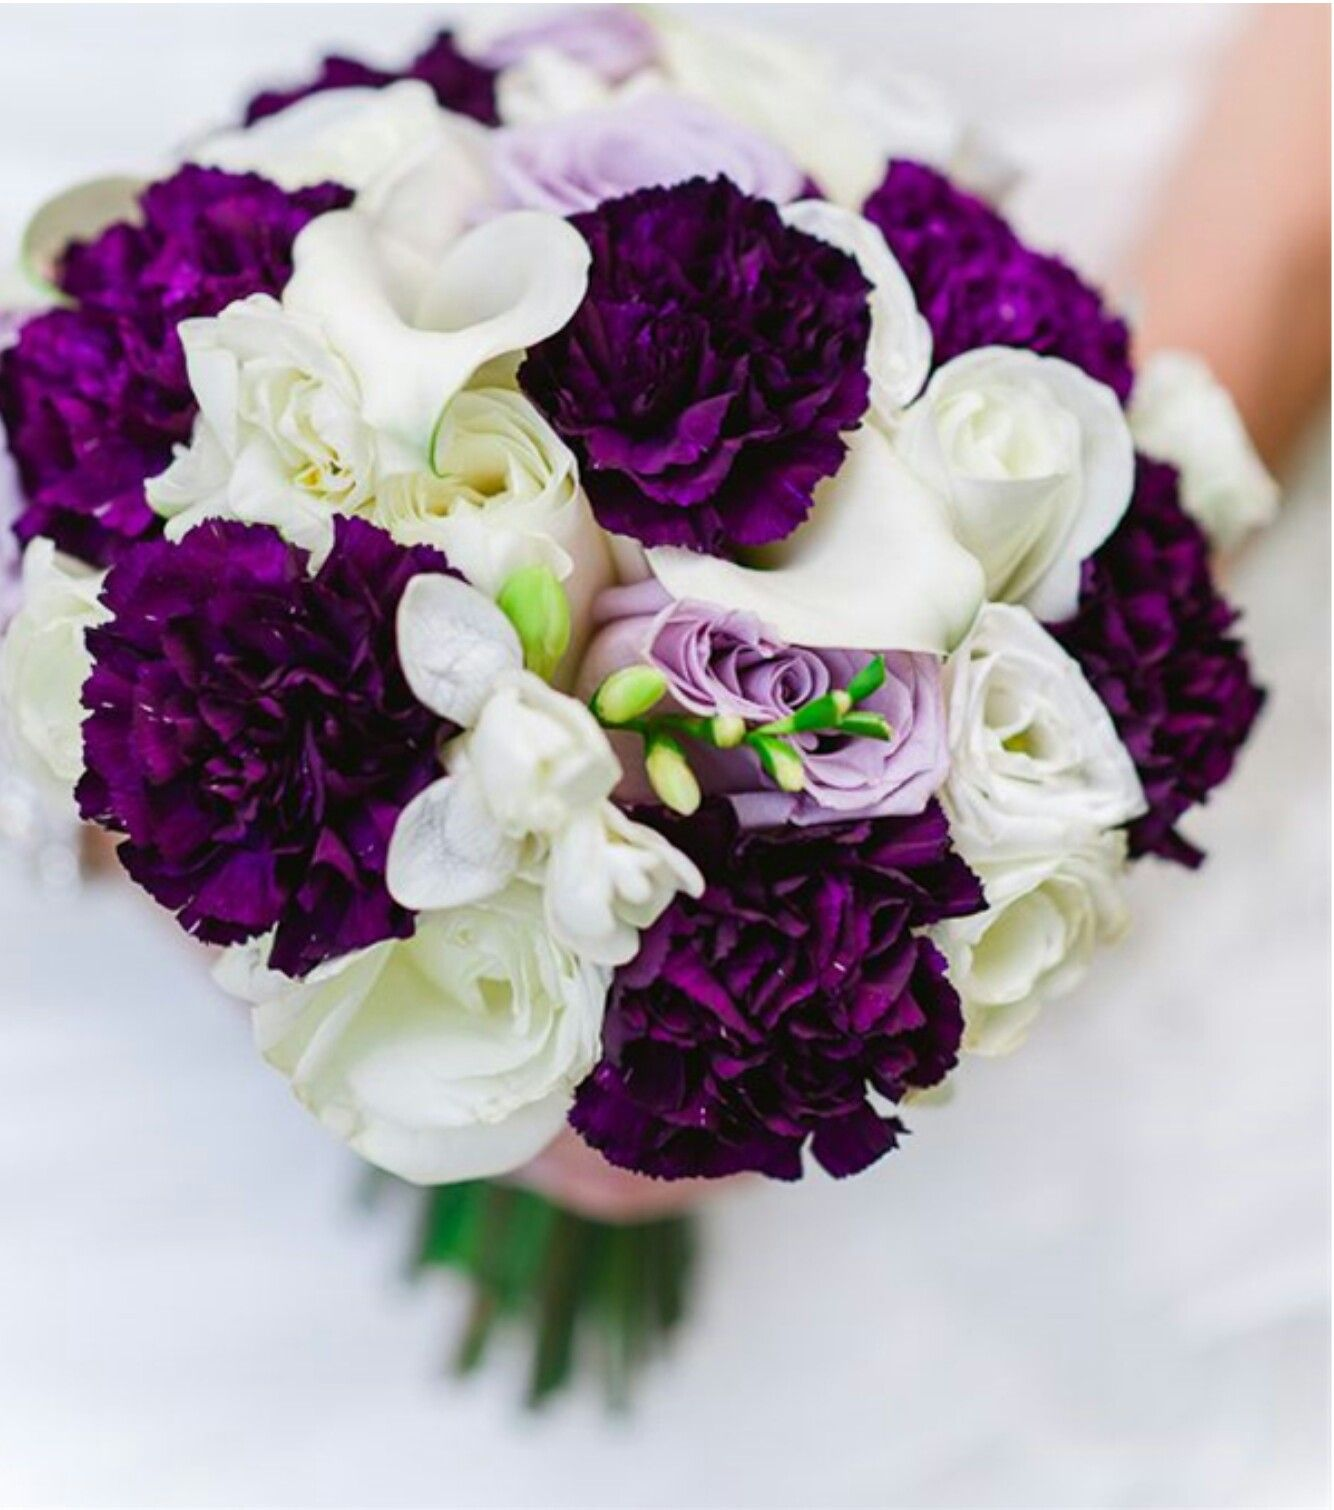 Pin By Mary Oca On Things I Love Purple Wedding Bouquets Purple